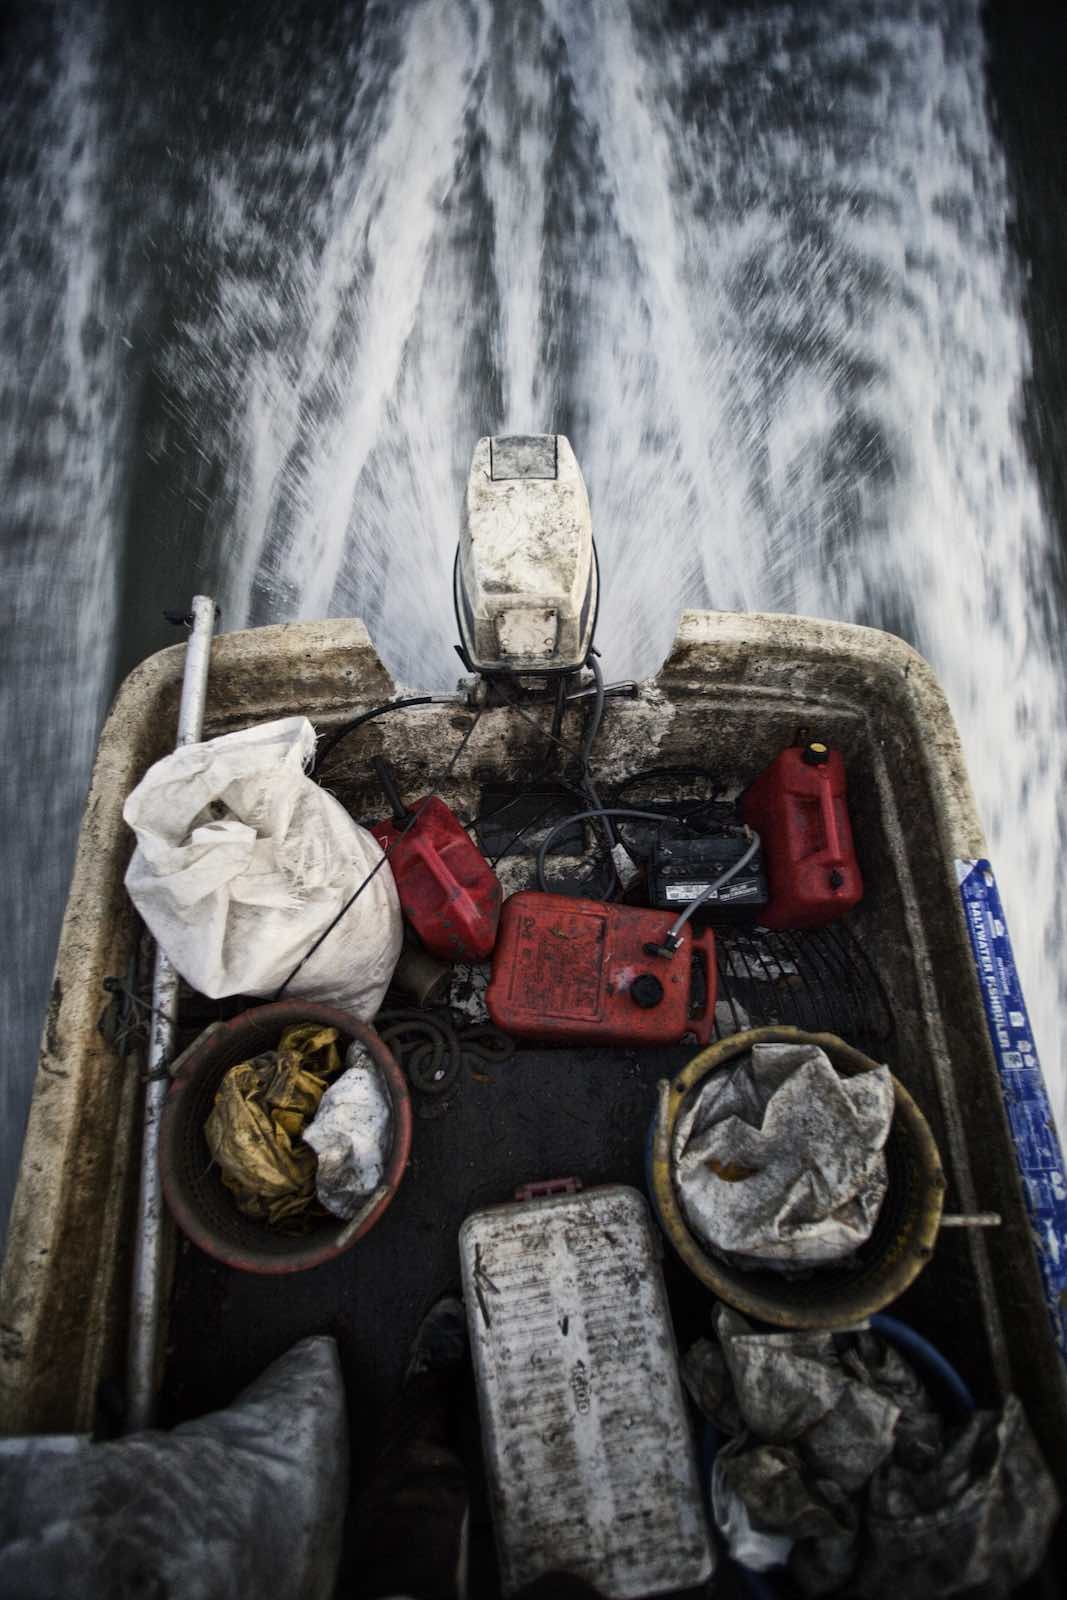 Jody Horton Photography - Speed boat with fishing gear moving along dark water.